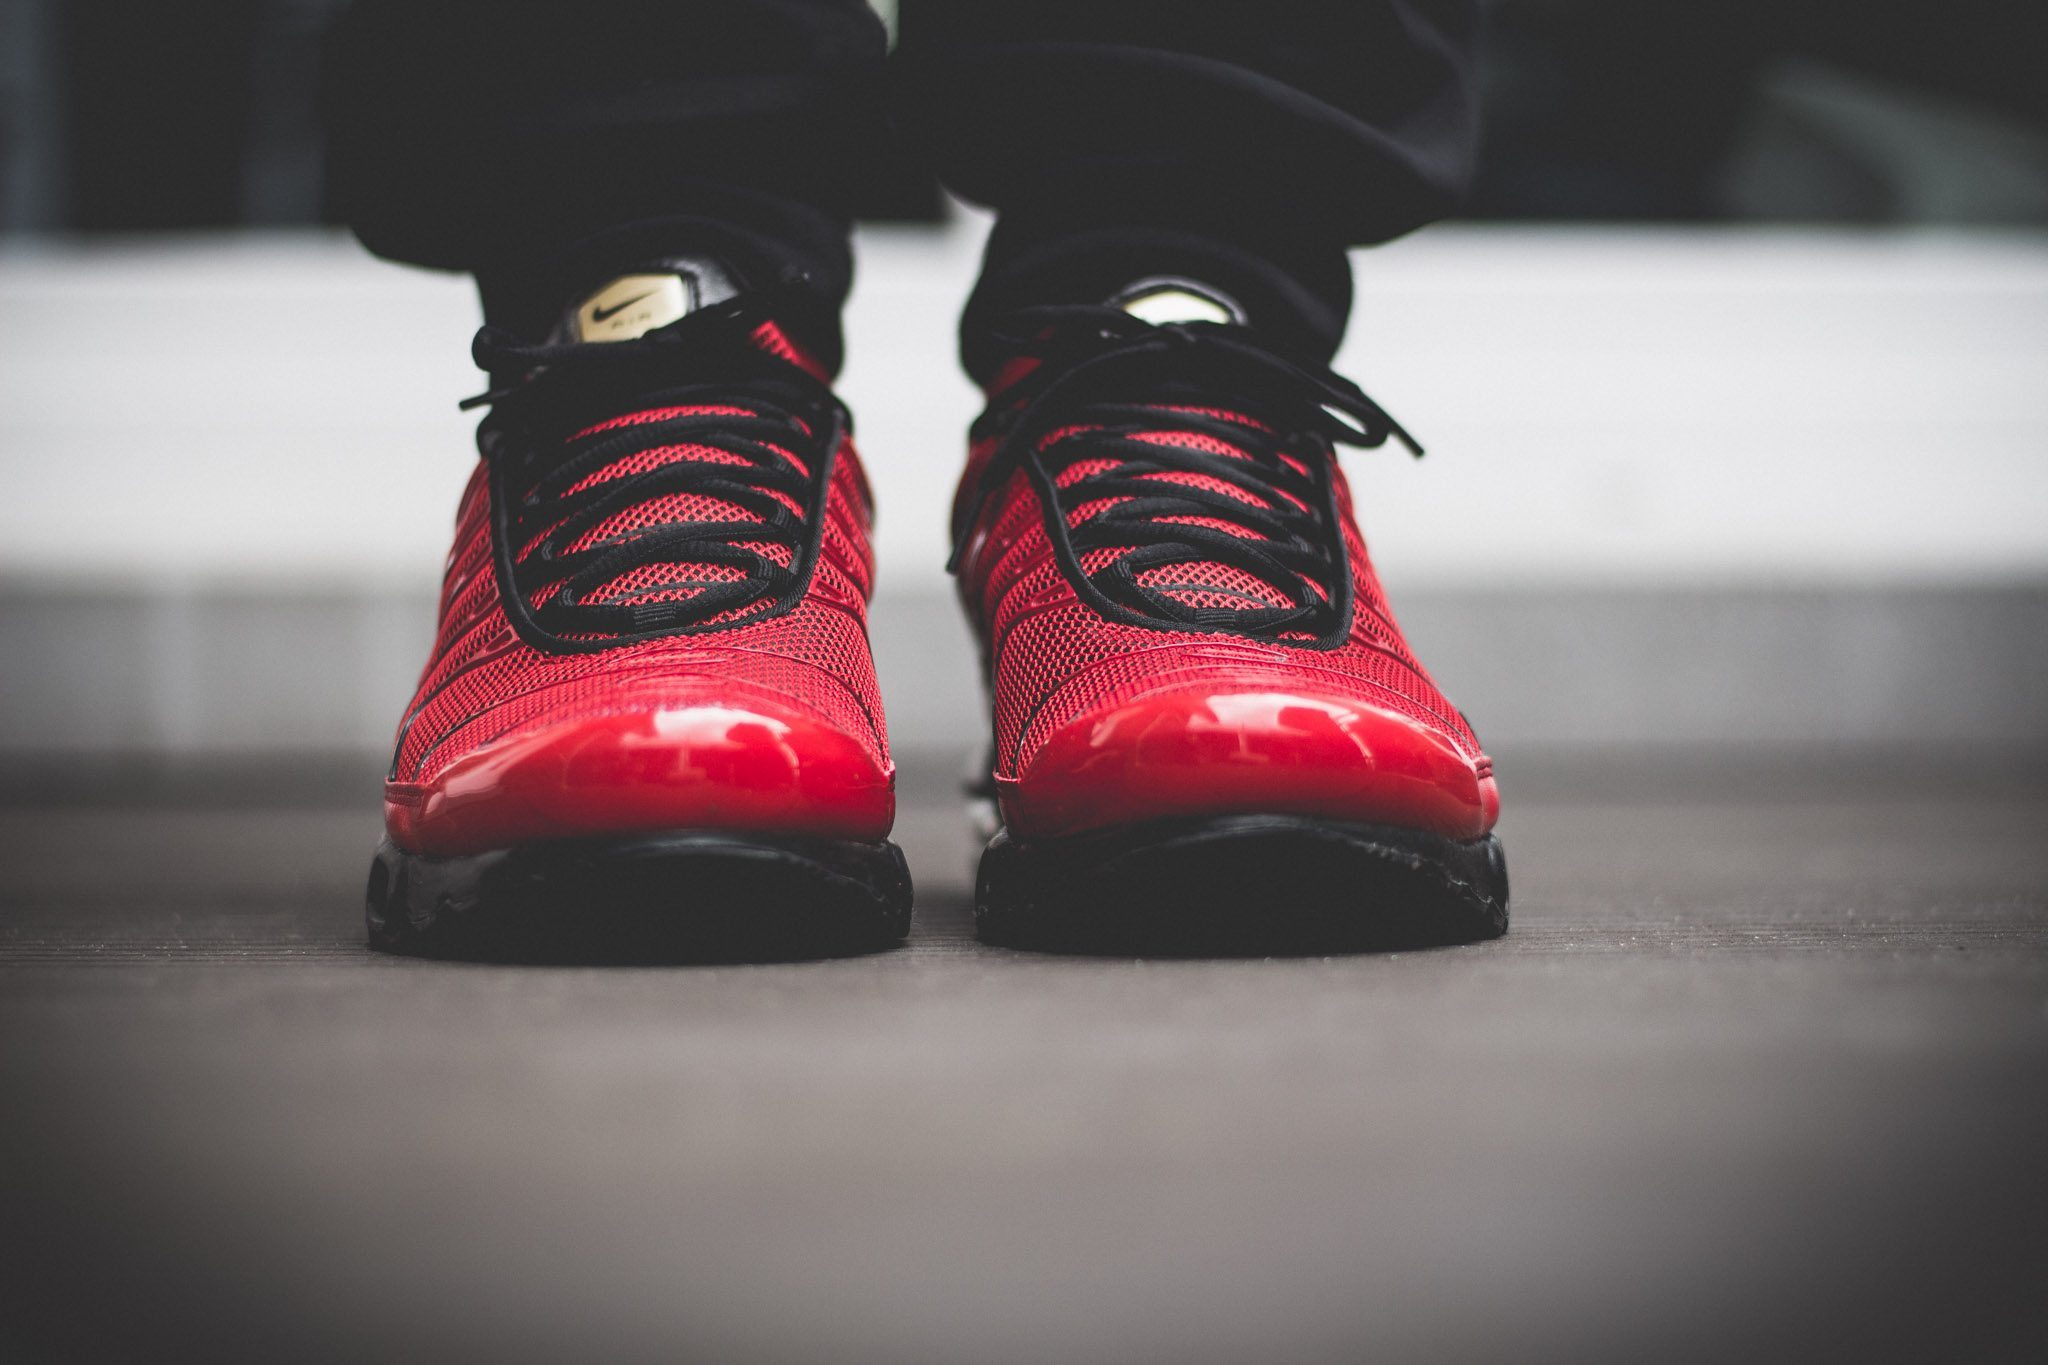 Nike Tuned 1 Red On Feet 4